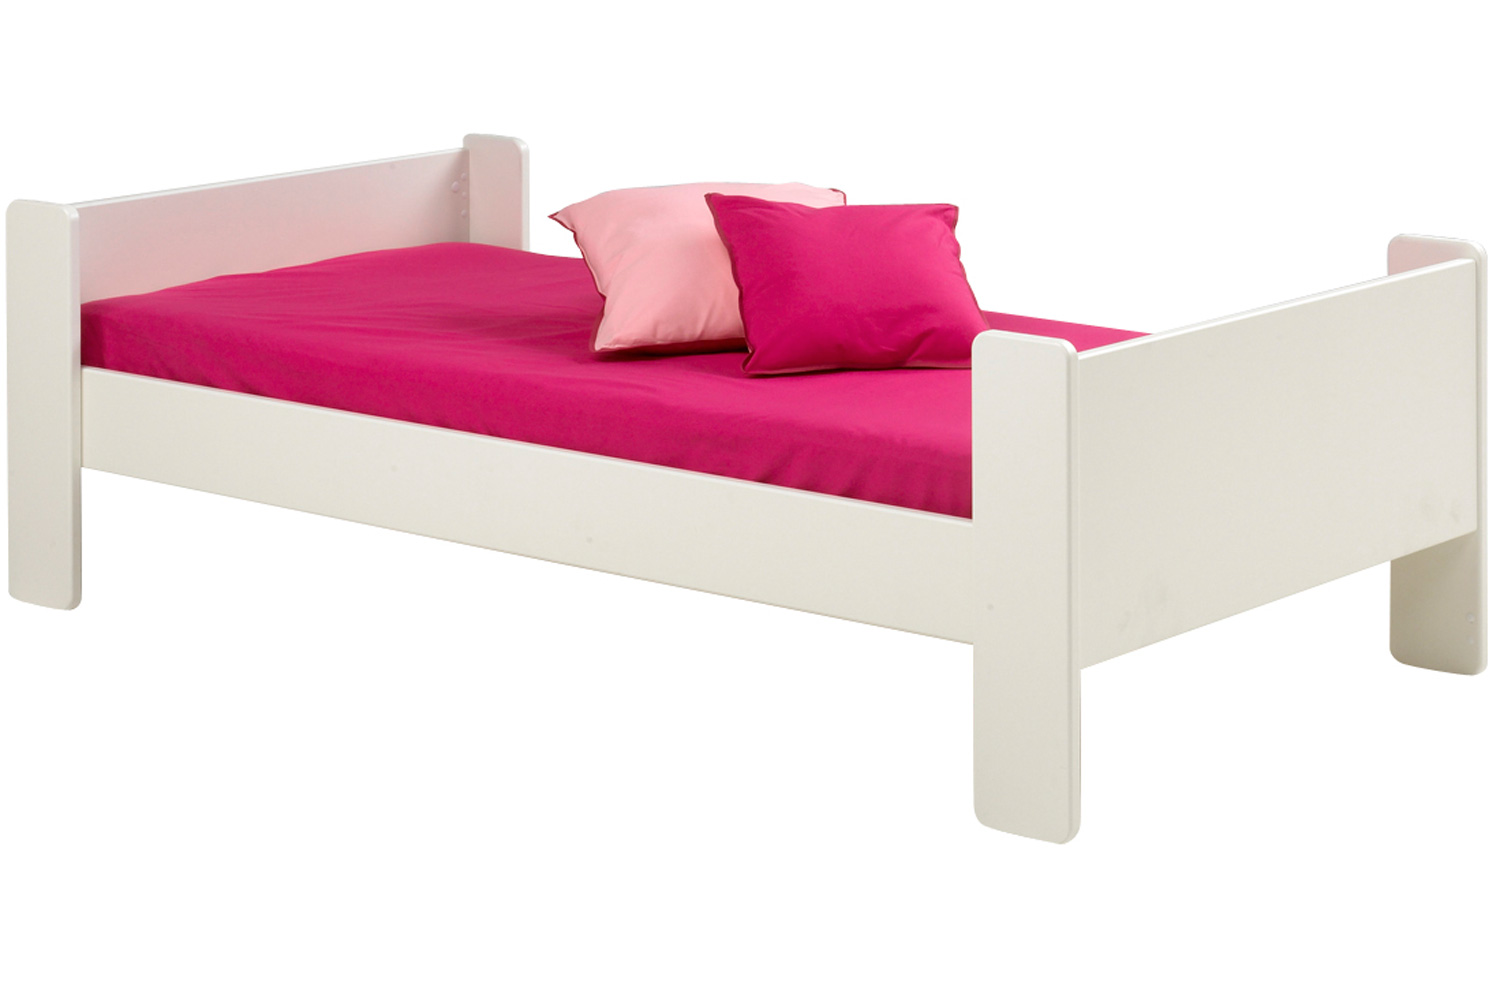 Popsicle Single Bed Frame Shop at Harvey Norman Ireland